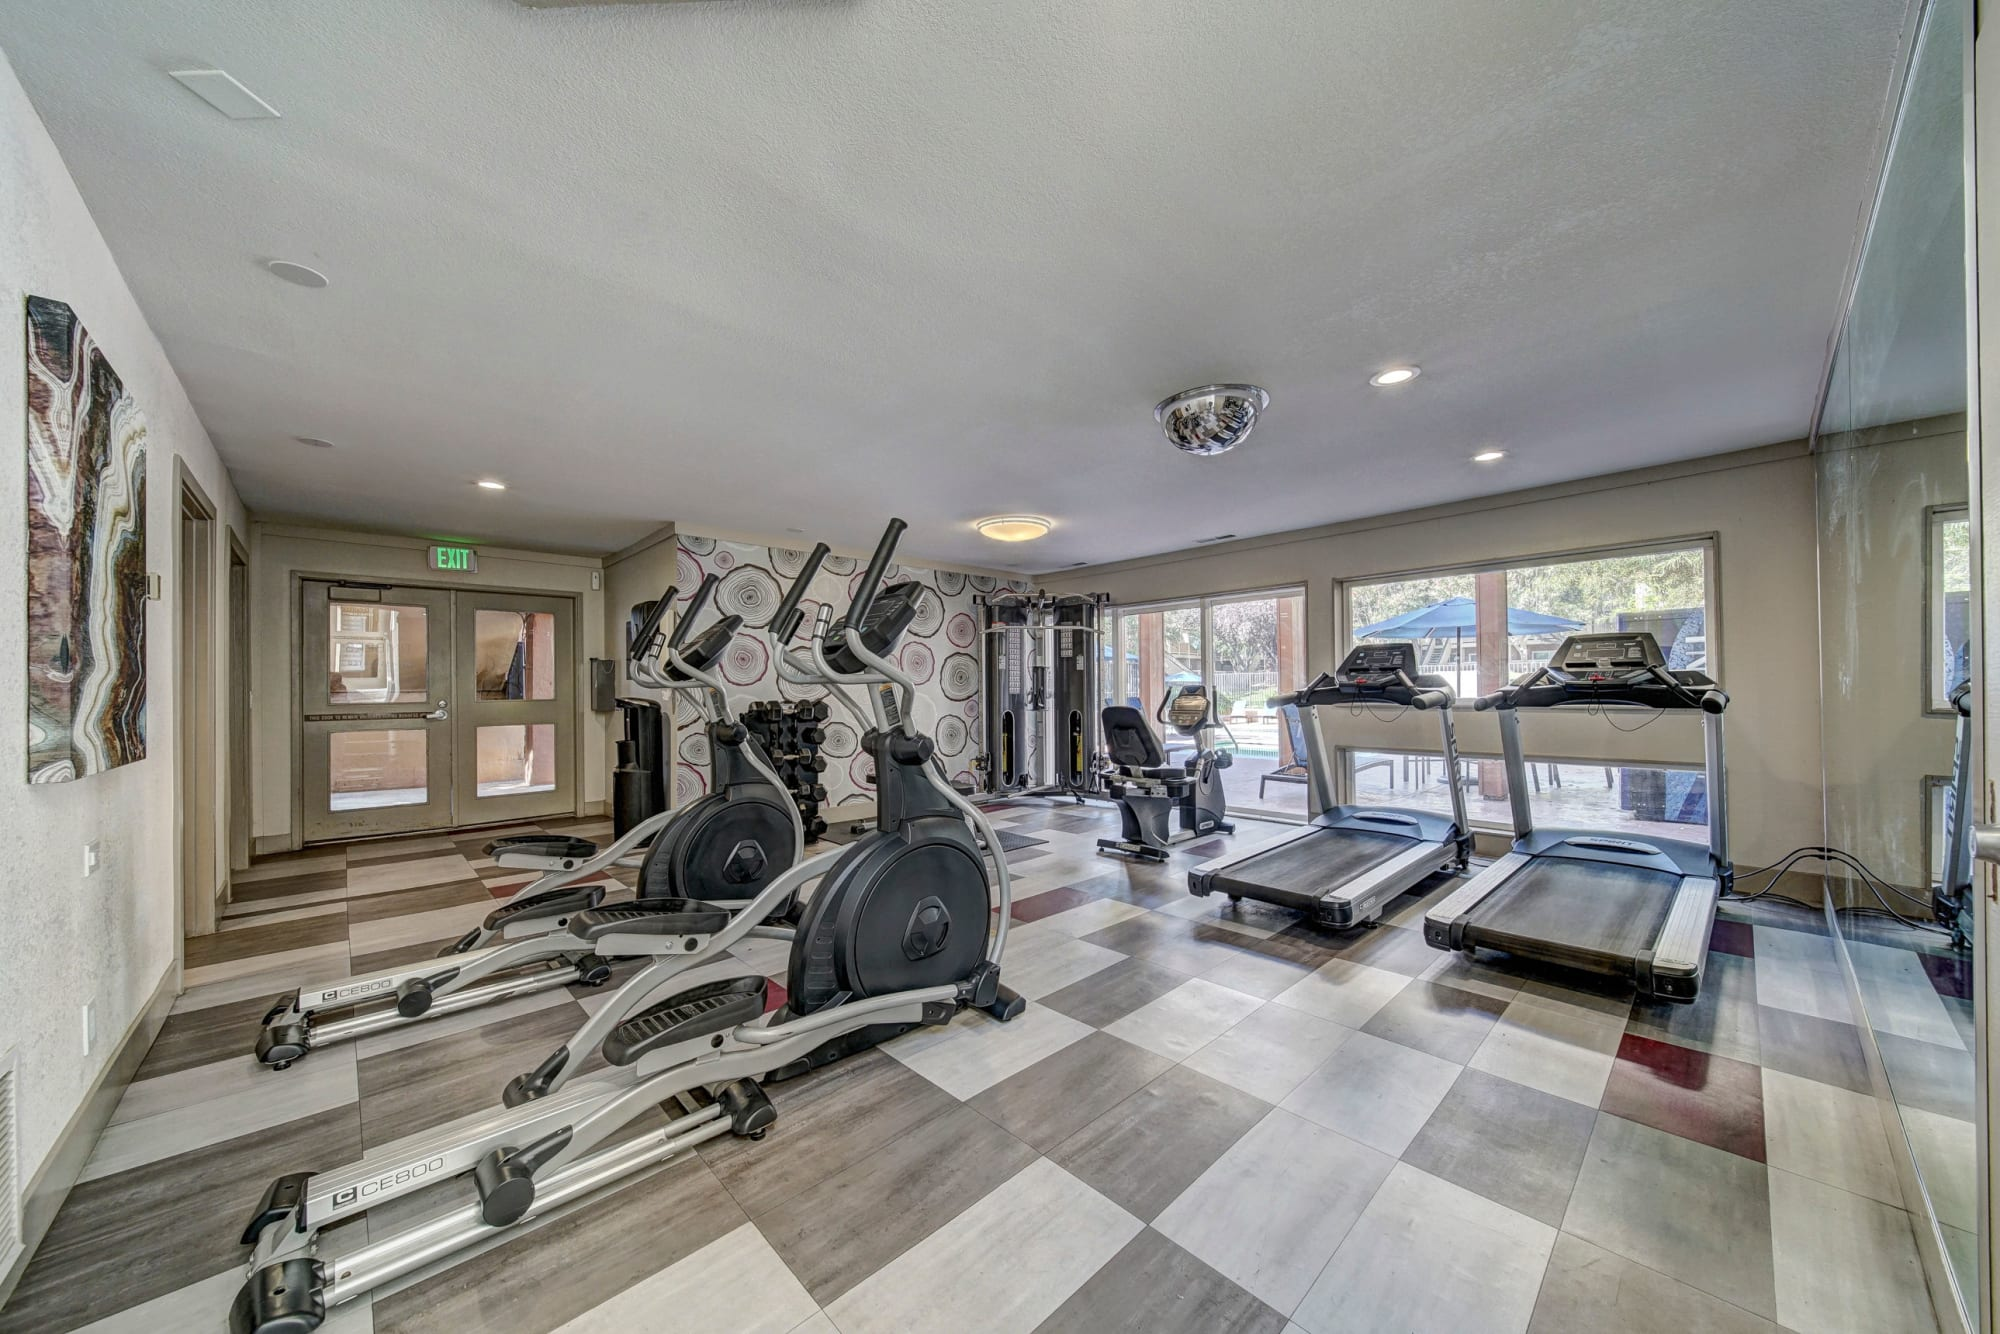 Fitness Center with cardio machines and large windows looking out to pool area